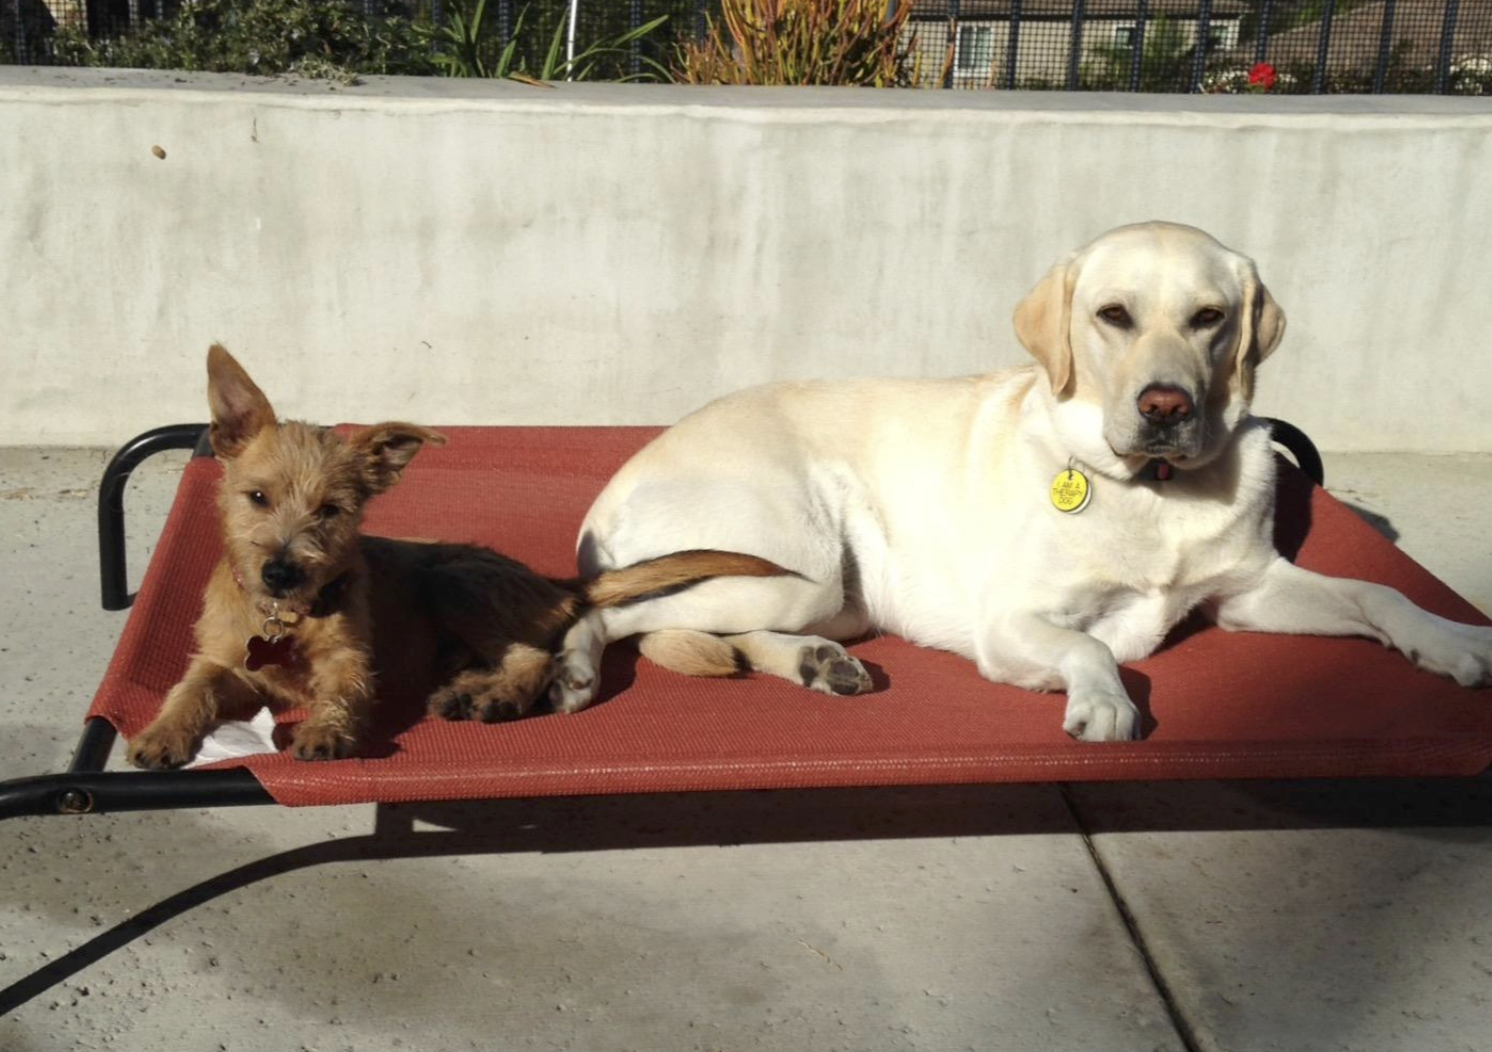 Two dogs perched on an elevated red cooling mat in the sun